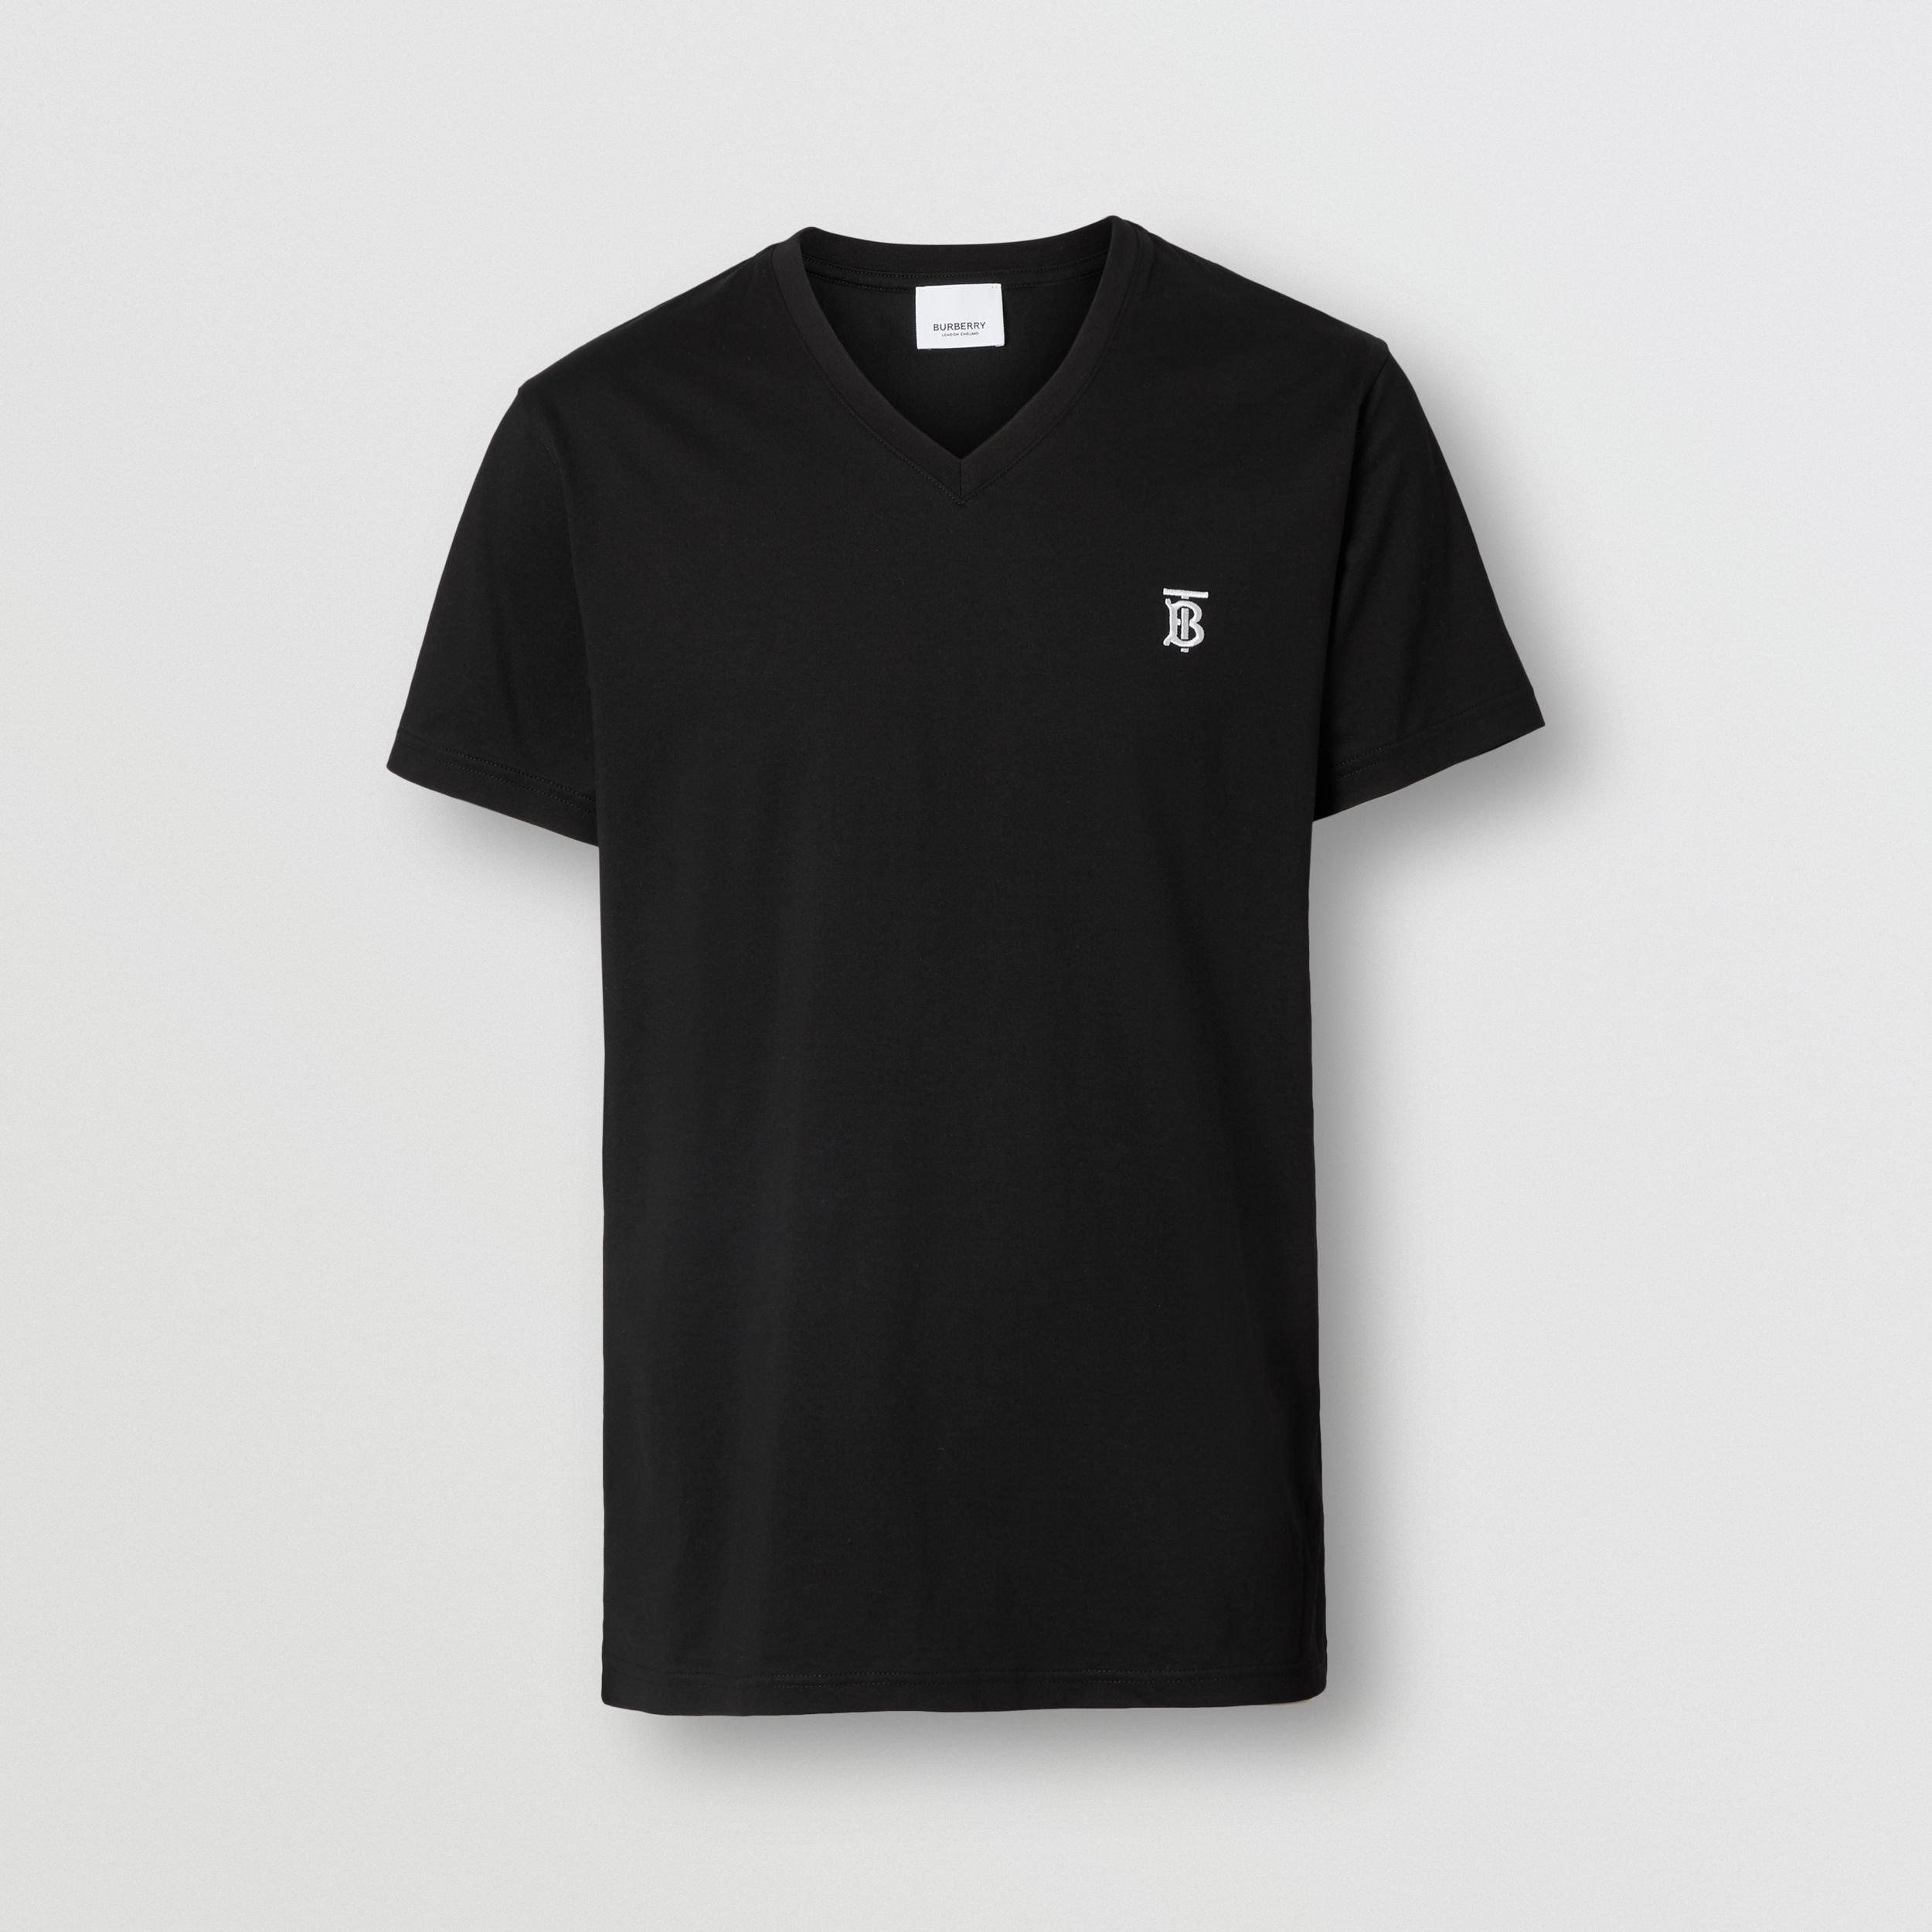 Monogram Motif Cotton V-neck T-shirt in Black - Men | Burberry - 4